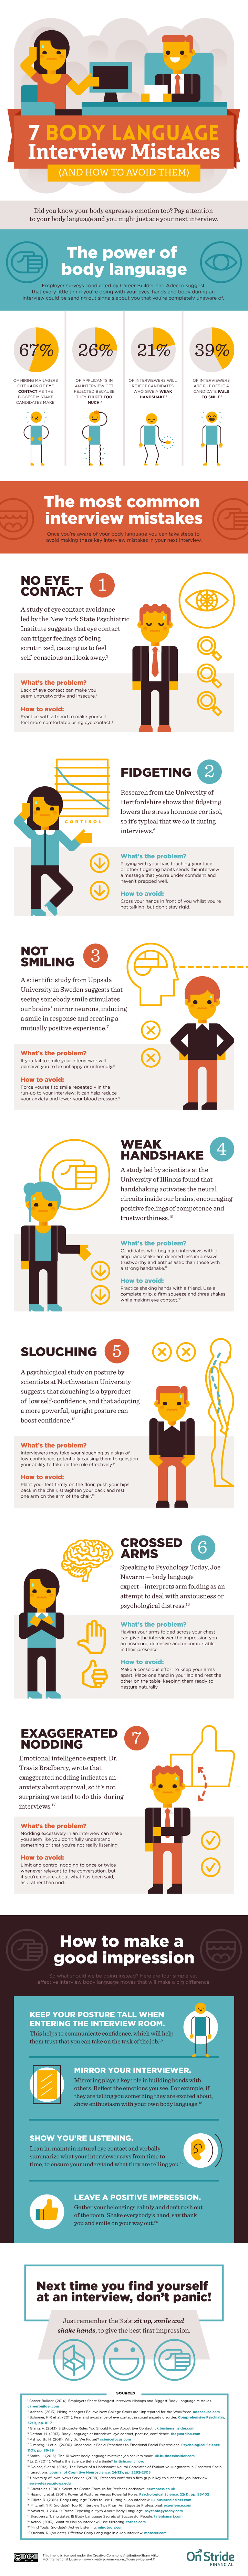 7-body-language-interview-mistakes-and-how-to-avoid-them